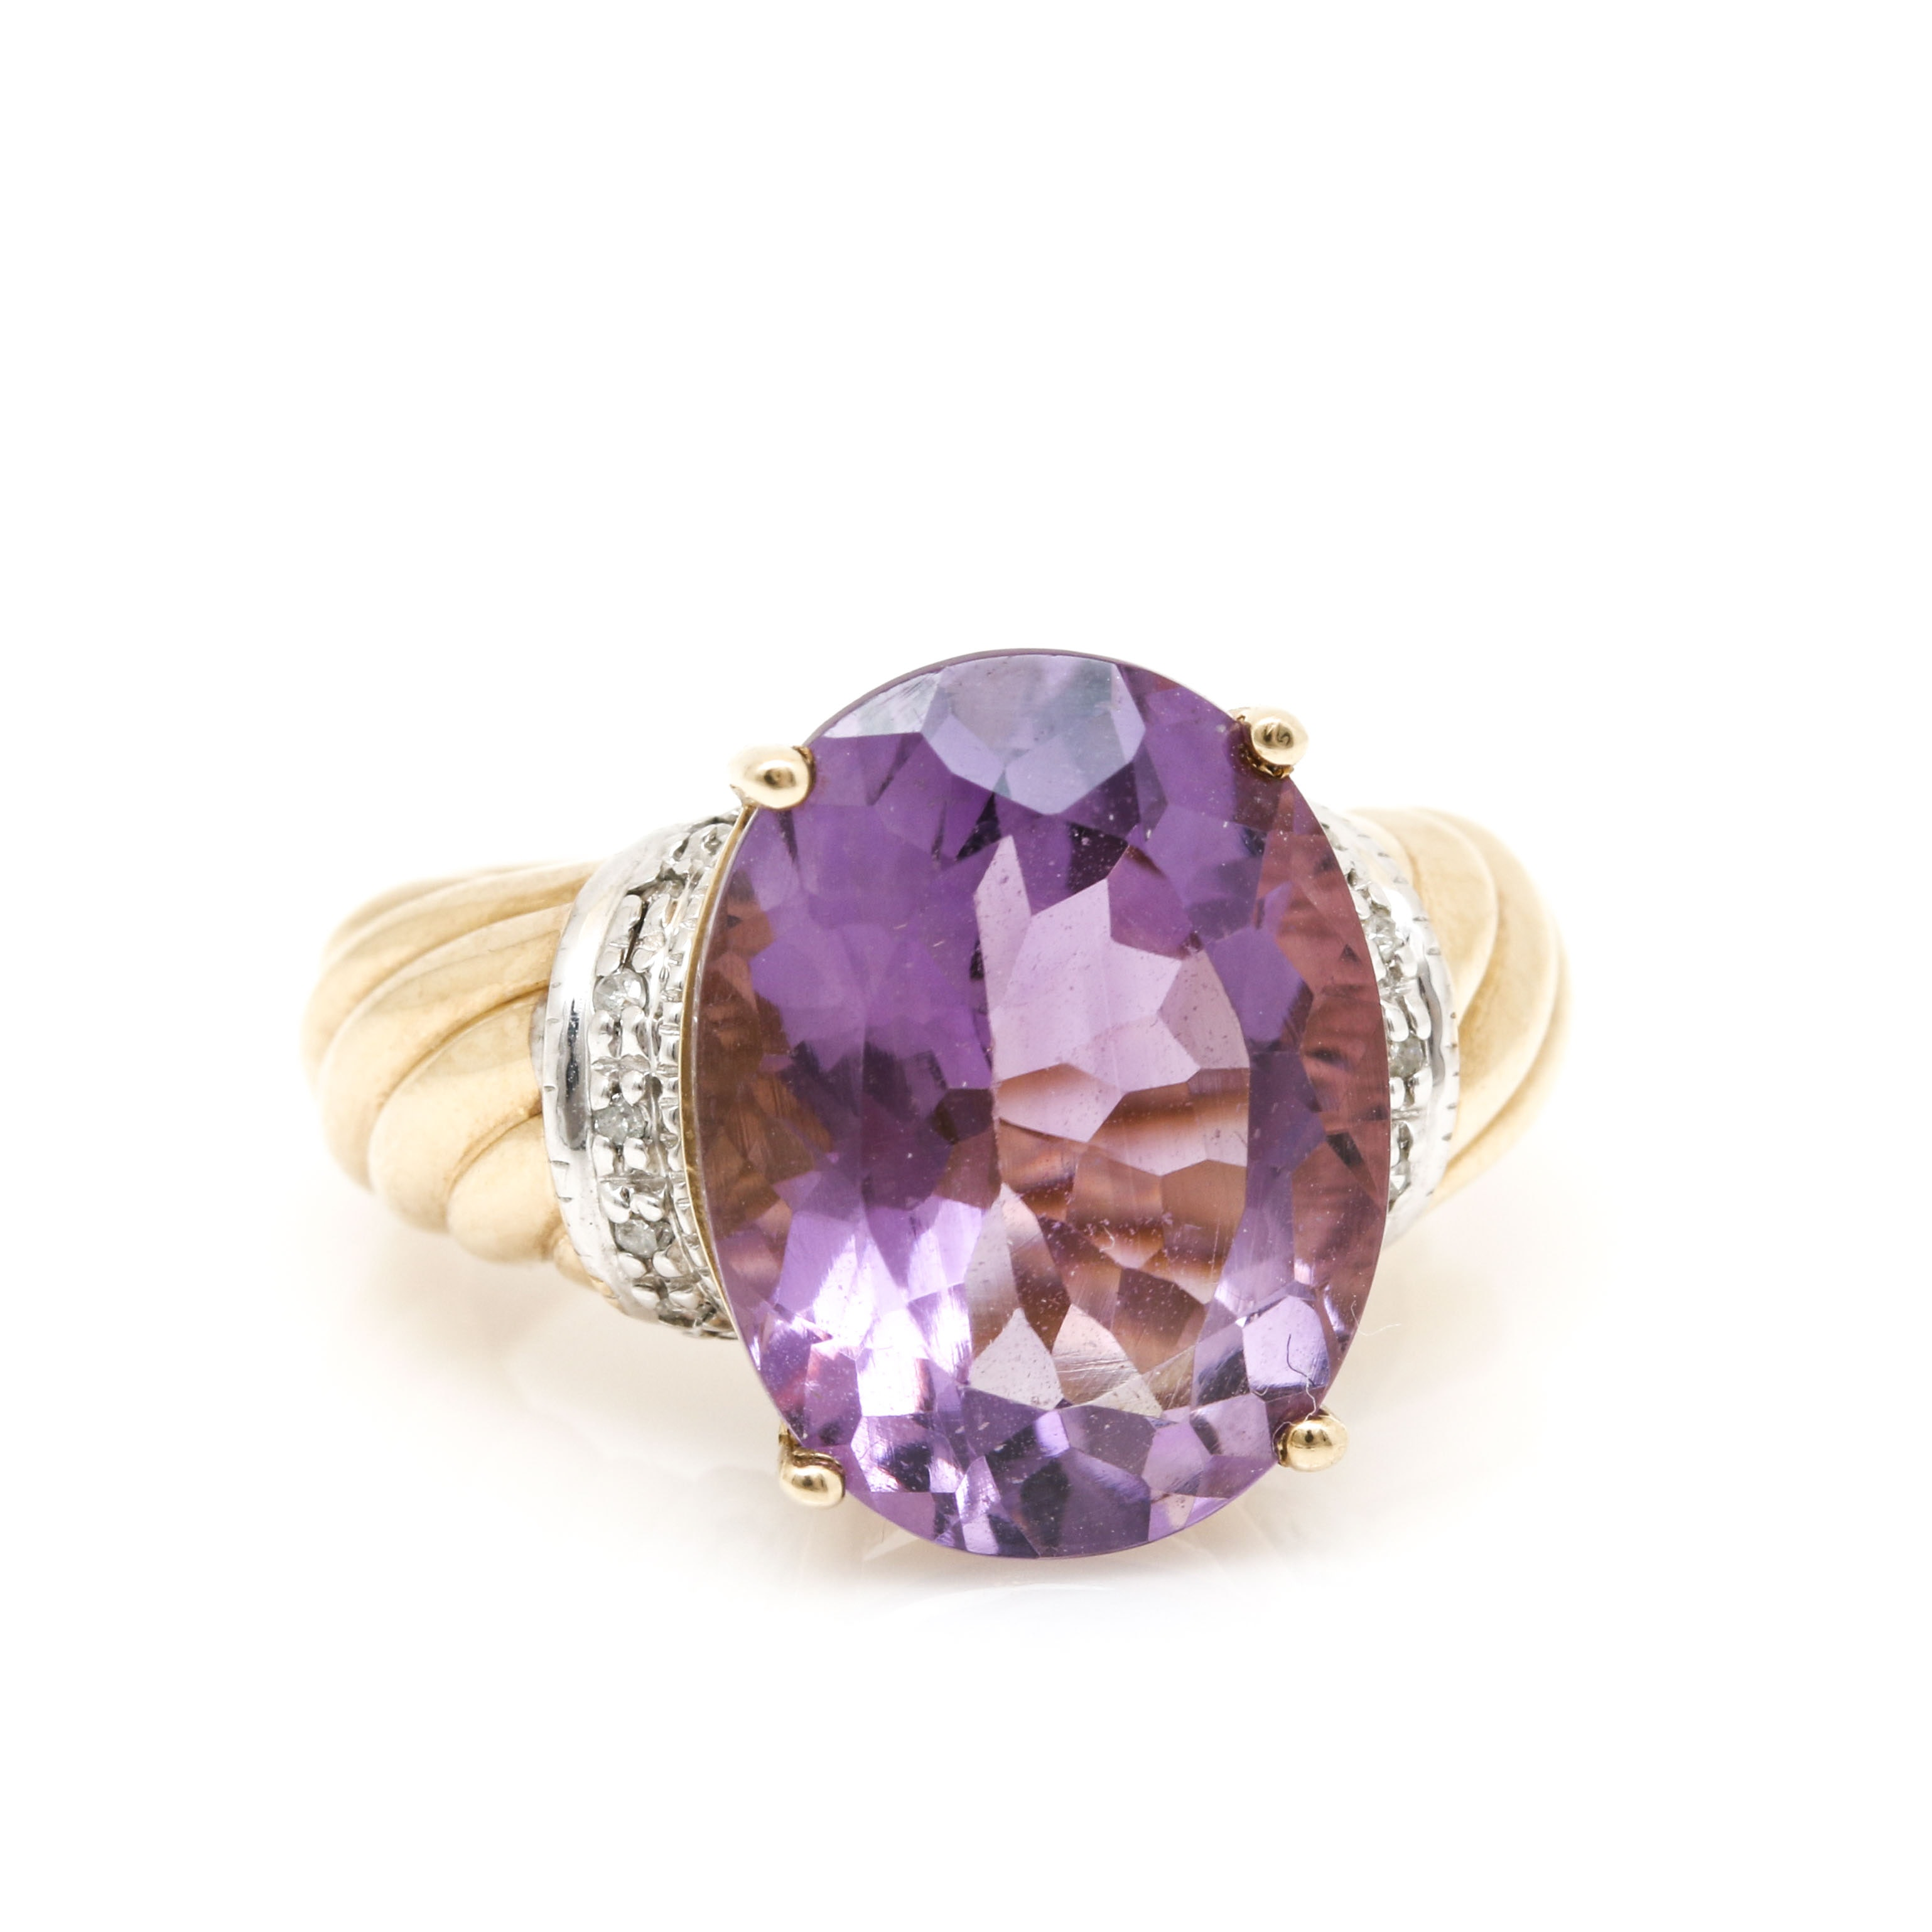 10K Yellow Gold 7.48 CT Amethyst and Diamond Ring